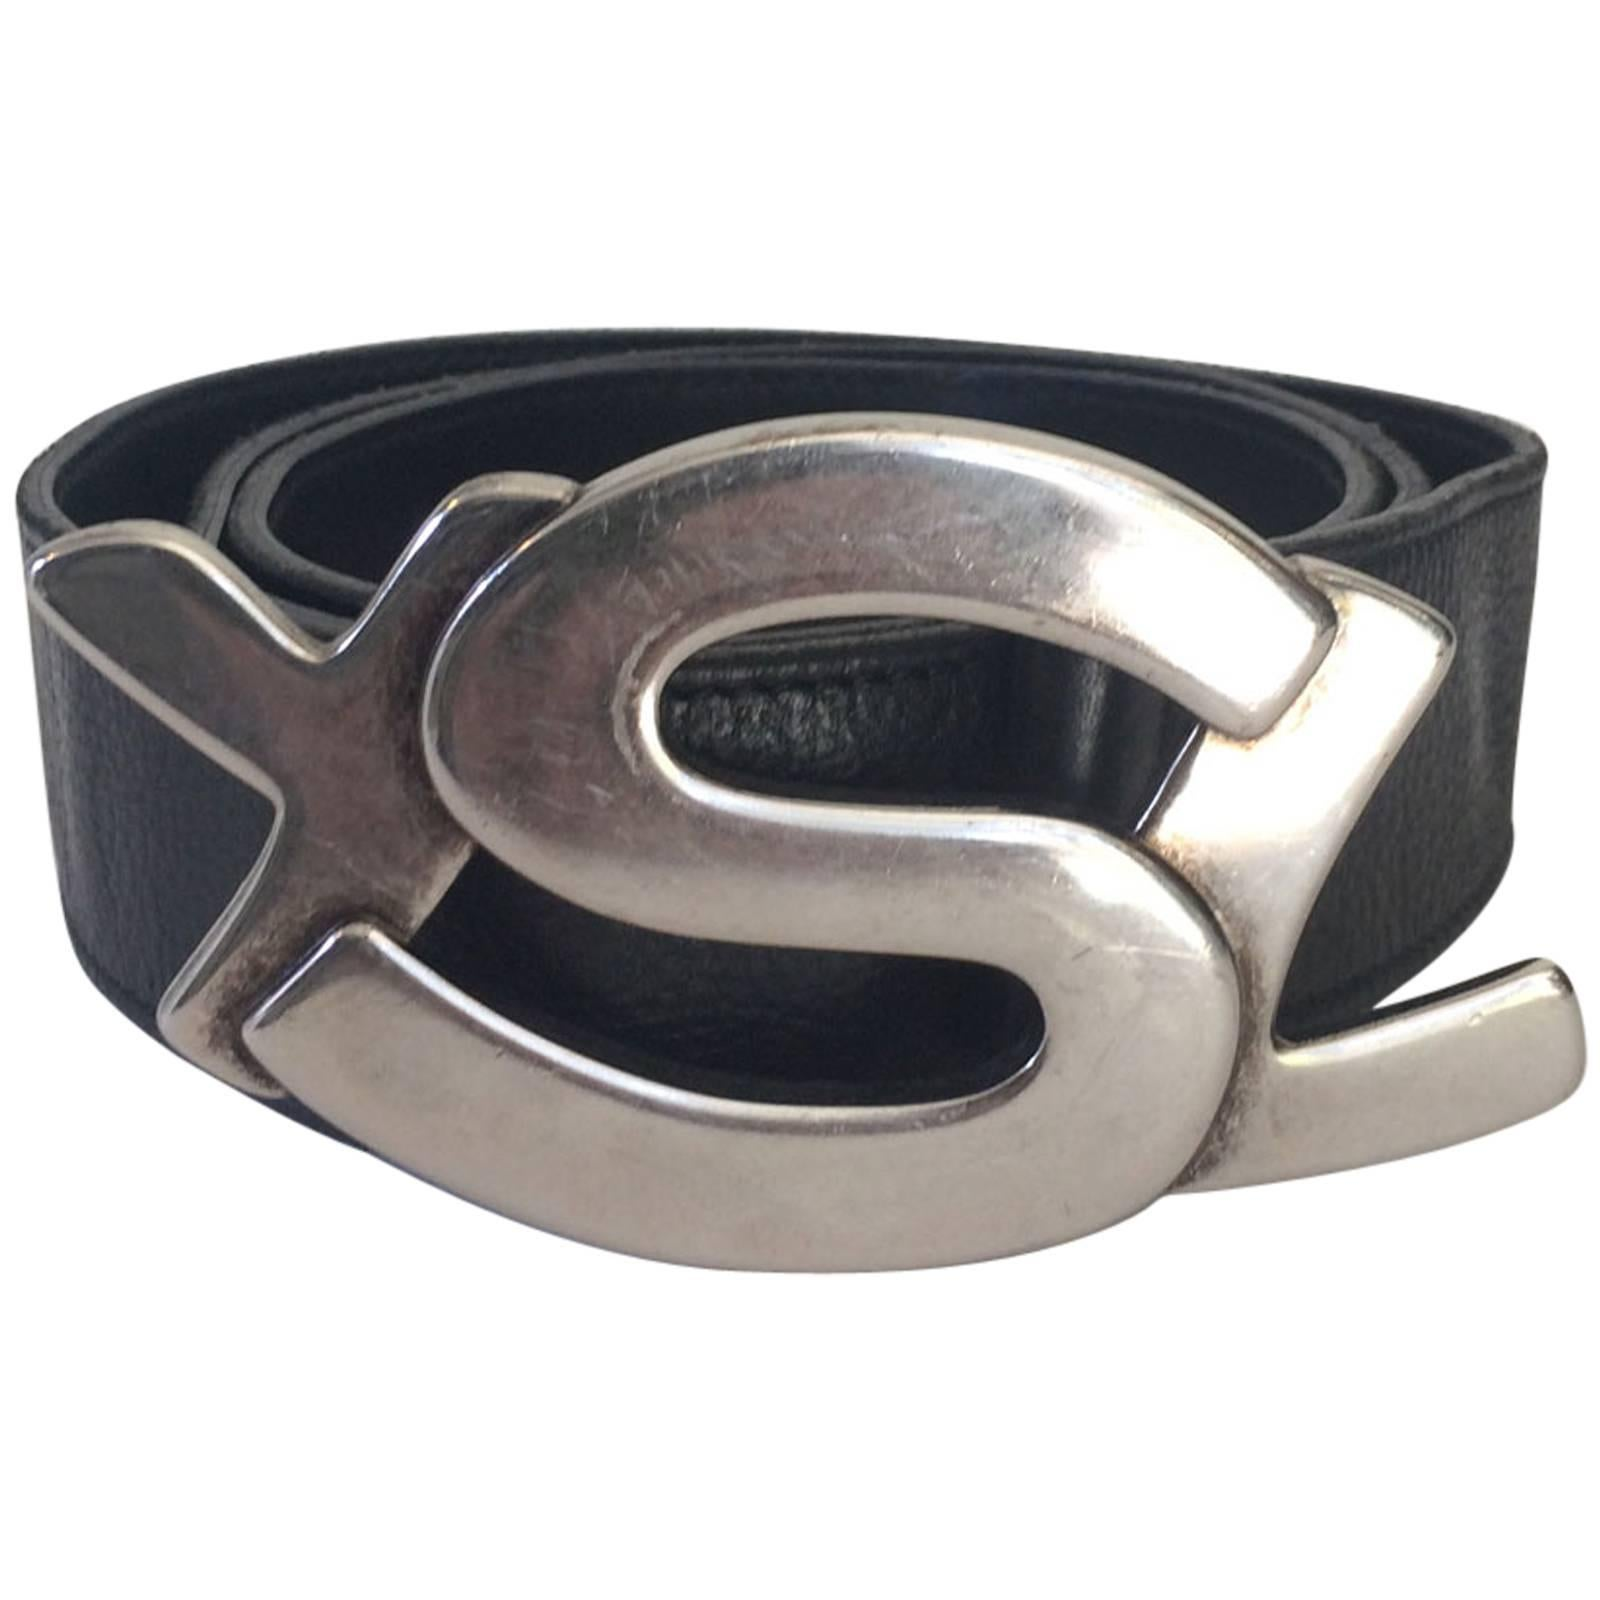 b738dfdbfd1c Yves Saint Laurent Silver YSL Logo Belt and Buckle at 1stdibs